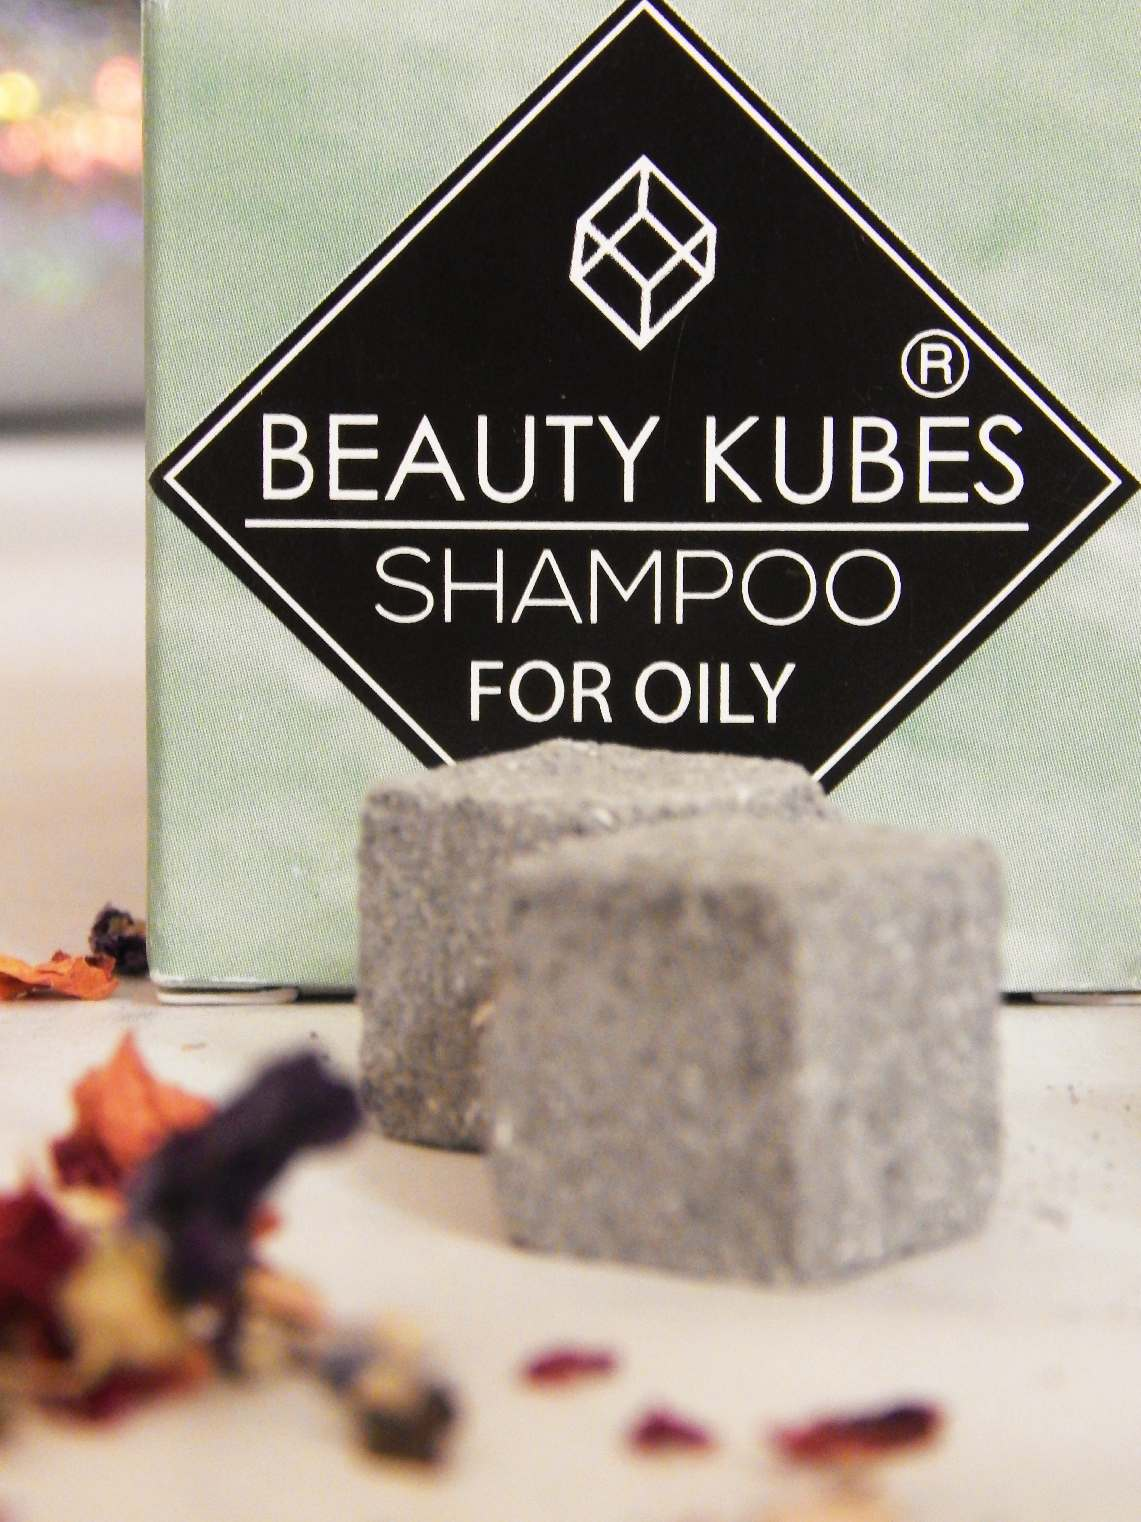 Box of Beauty Kubes with loose cubes and dried flowers in the foreground